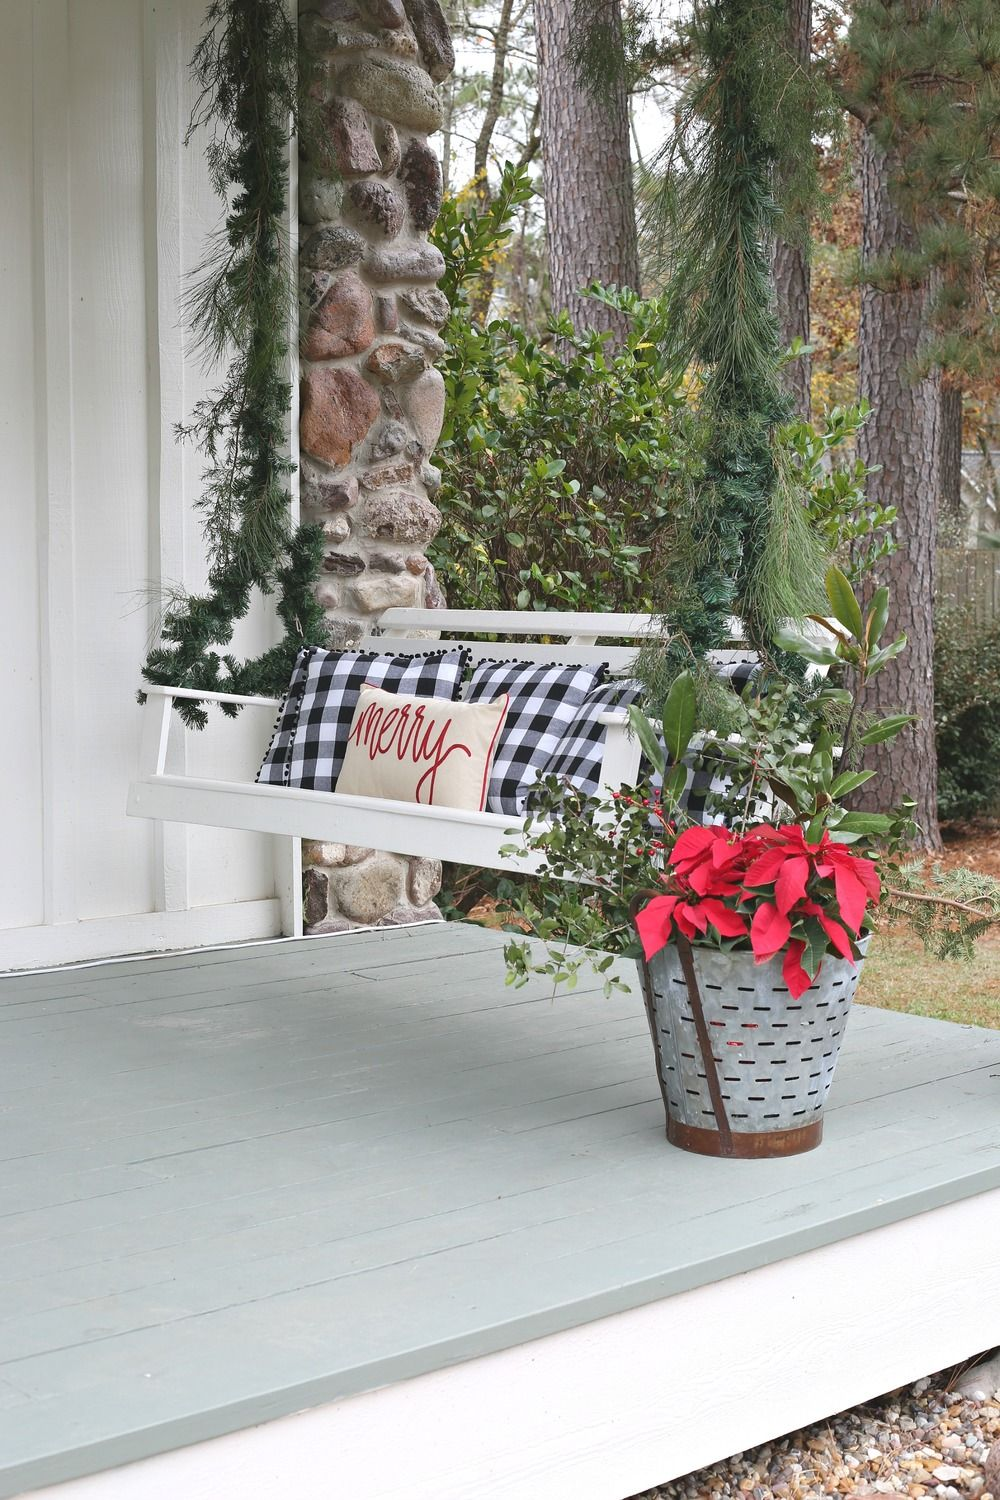 Christmas Porch Swing Decorated With Garland Front Porch Christmas Decor Front Porch Decorating Christmas Decorations Rustic